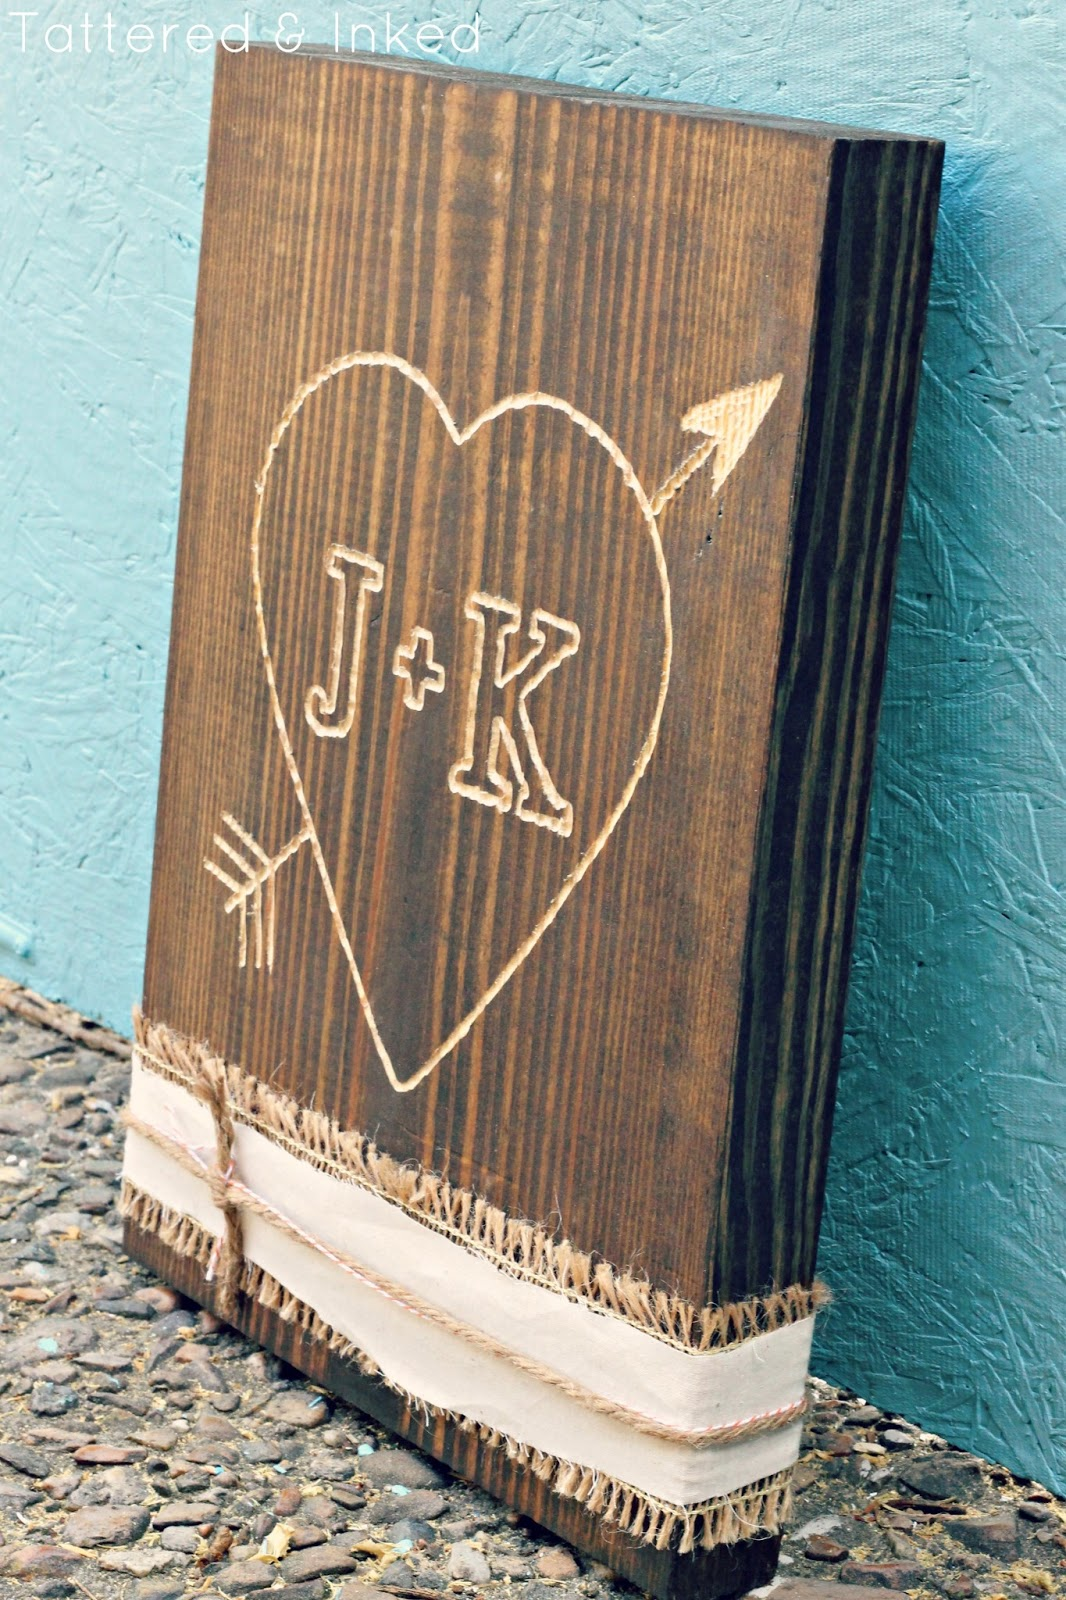 Tattered and inked diy initial wood carving